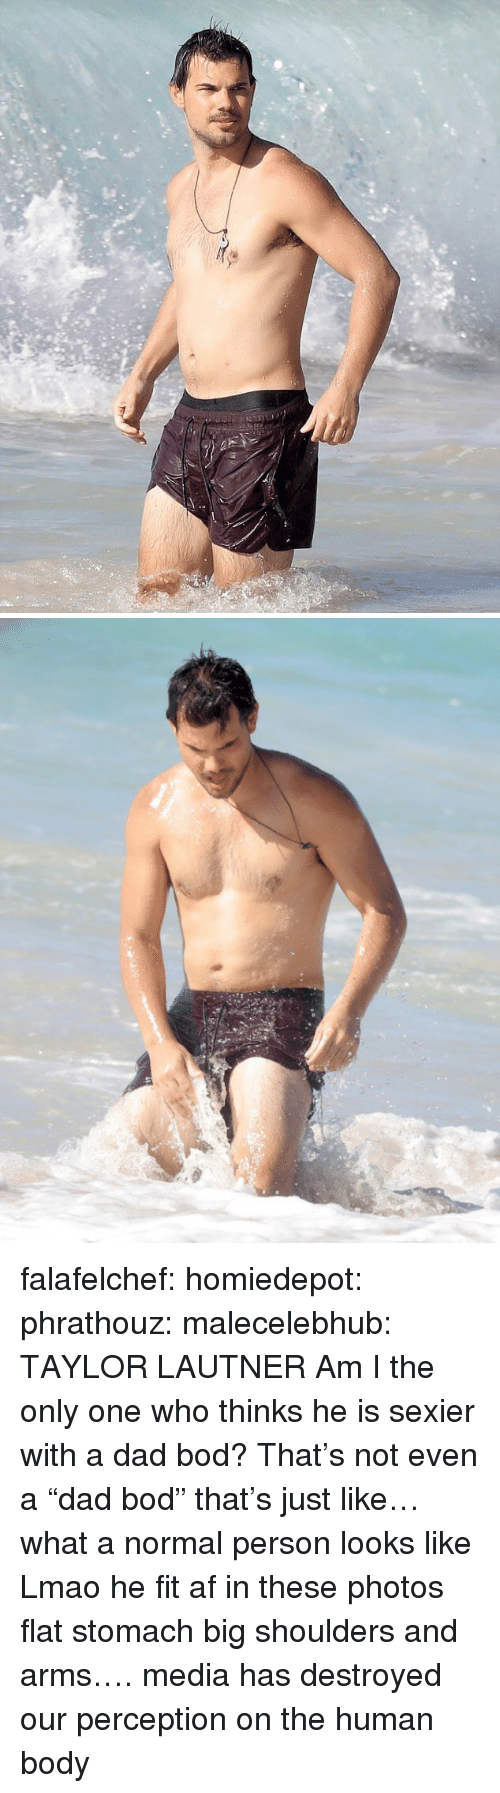 """Am I the Only One: falafelchef:  homiedepot:  phrathouz:  malecelebhub:  TAYLOR LAUTNER  Am I the only one who thinks he is sexier with a dad bod?   That's not even a """"dad bod"""" that's just like… what a normal person looks like  Lmao he fit af in these photos flat stomach big shoulders and arms…. media has destroyed our perception on the human body"""